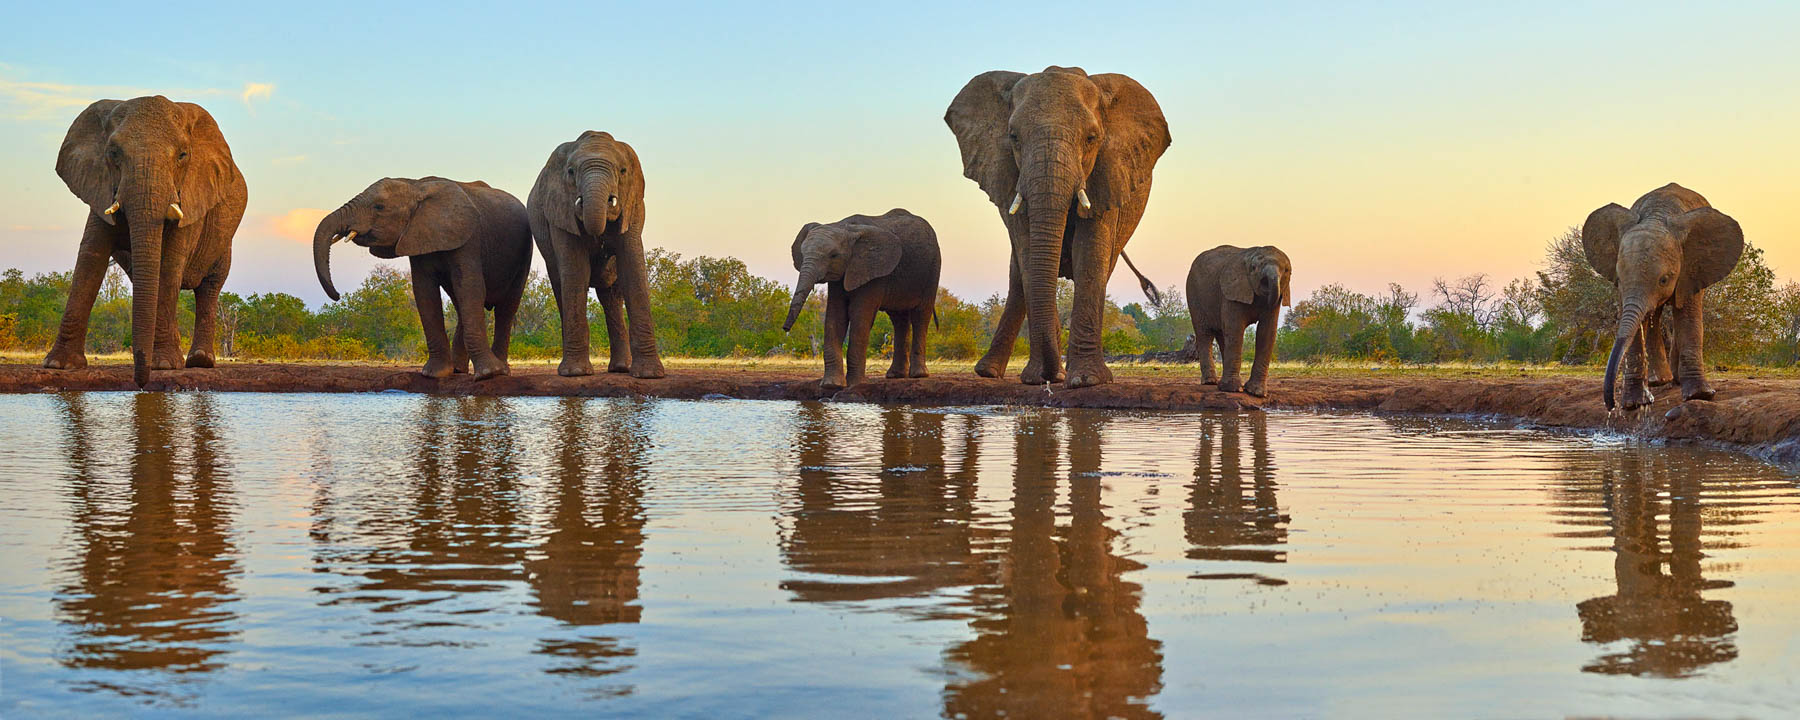 A herd of elephants drinking from the waterhole at sunset, Mashatu Game Reserve, Botswana, Africa.